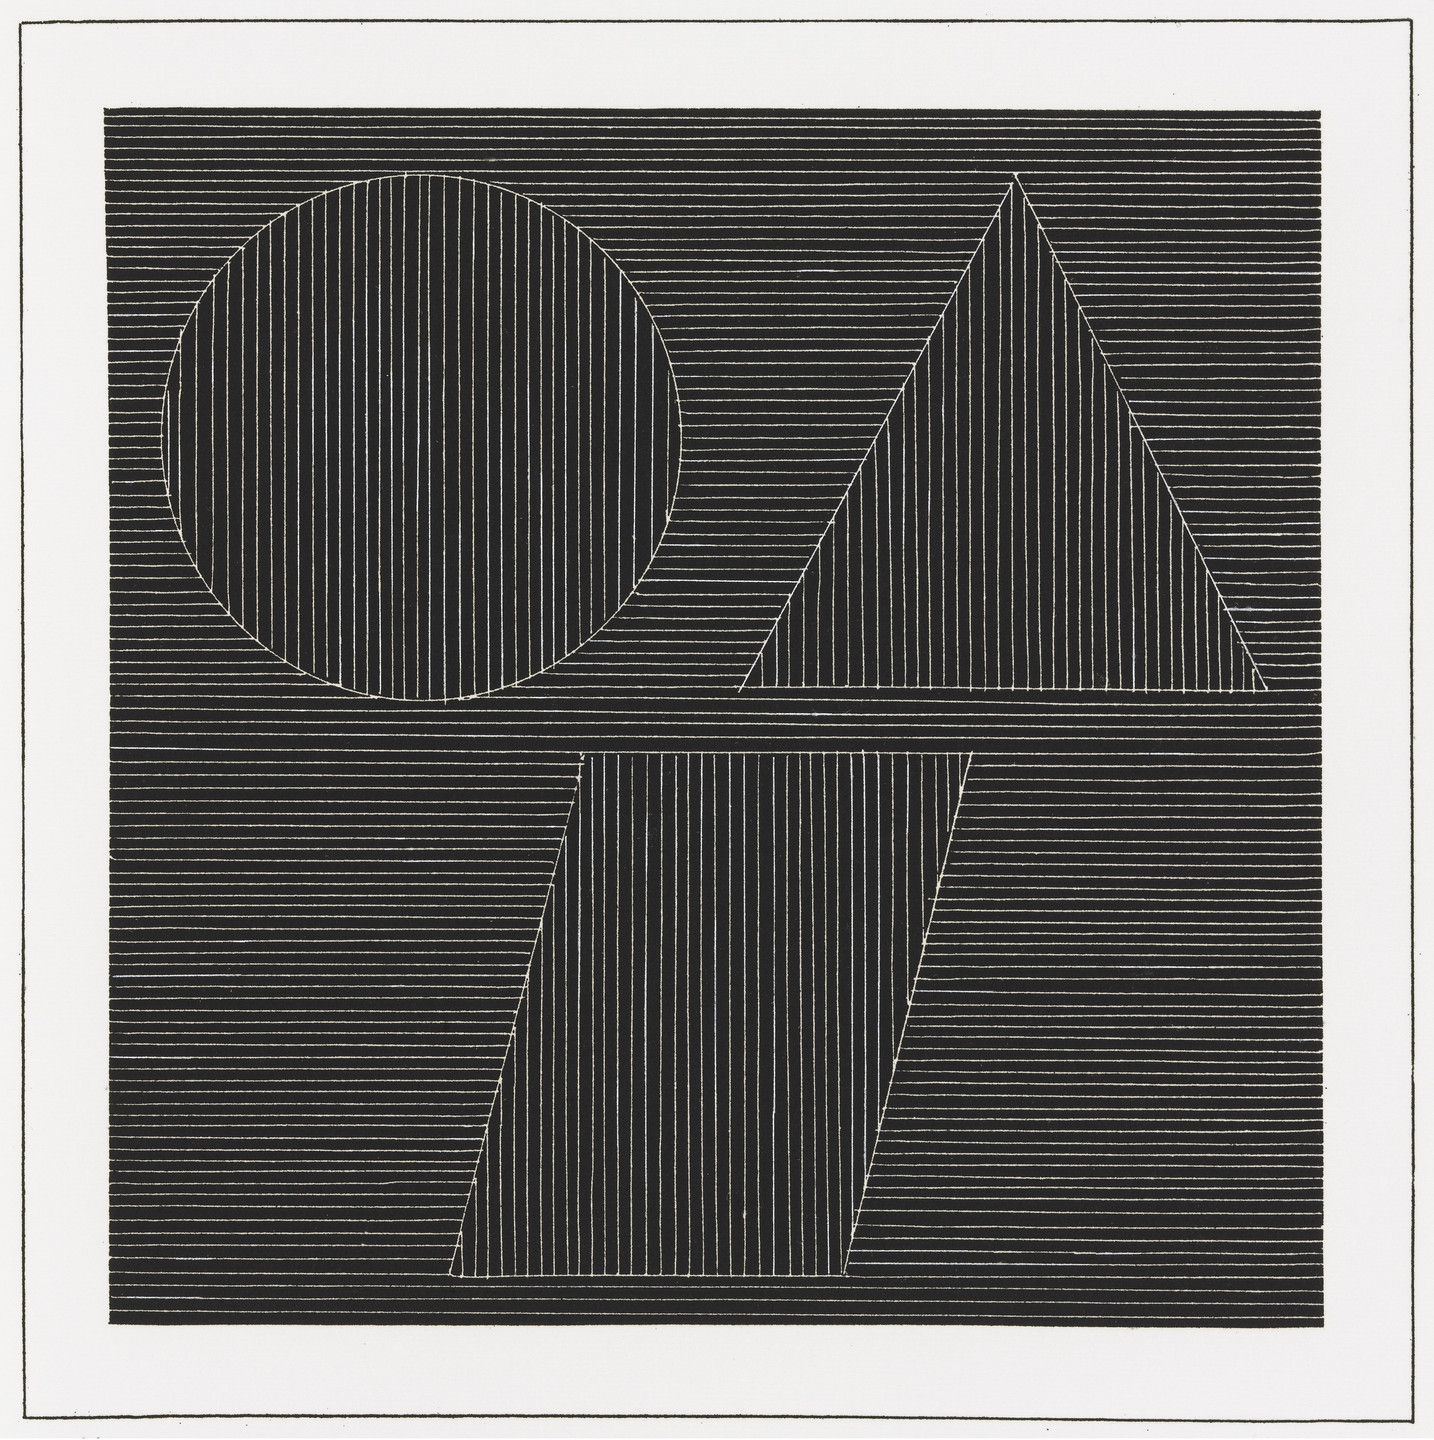 Sol LeWitt. Plate (folio 35) from Six Geometric Figures and All Their Combinations, Volume I. 1980